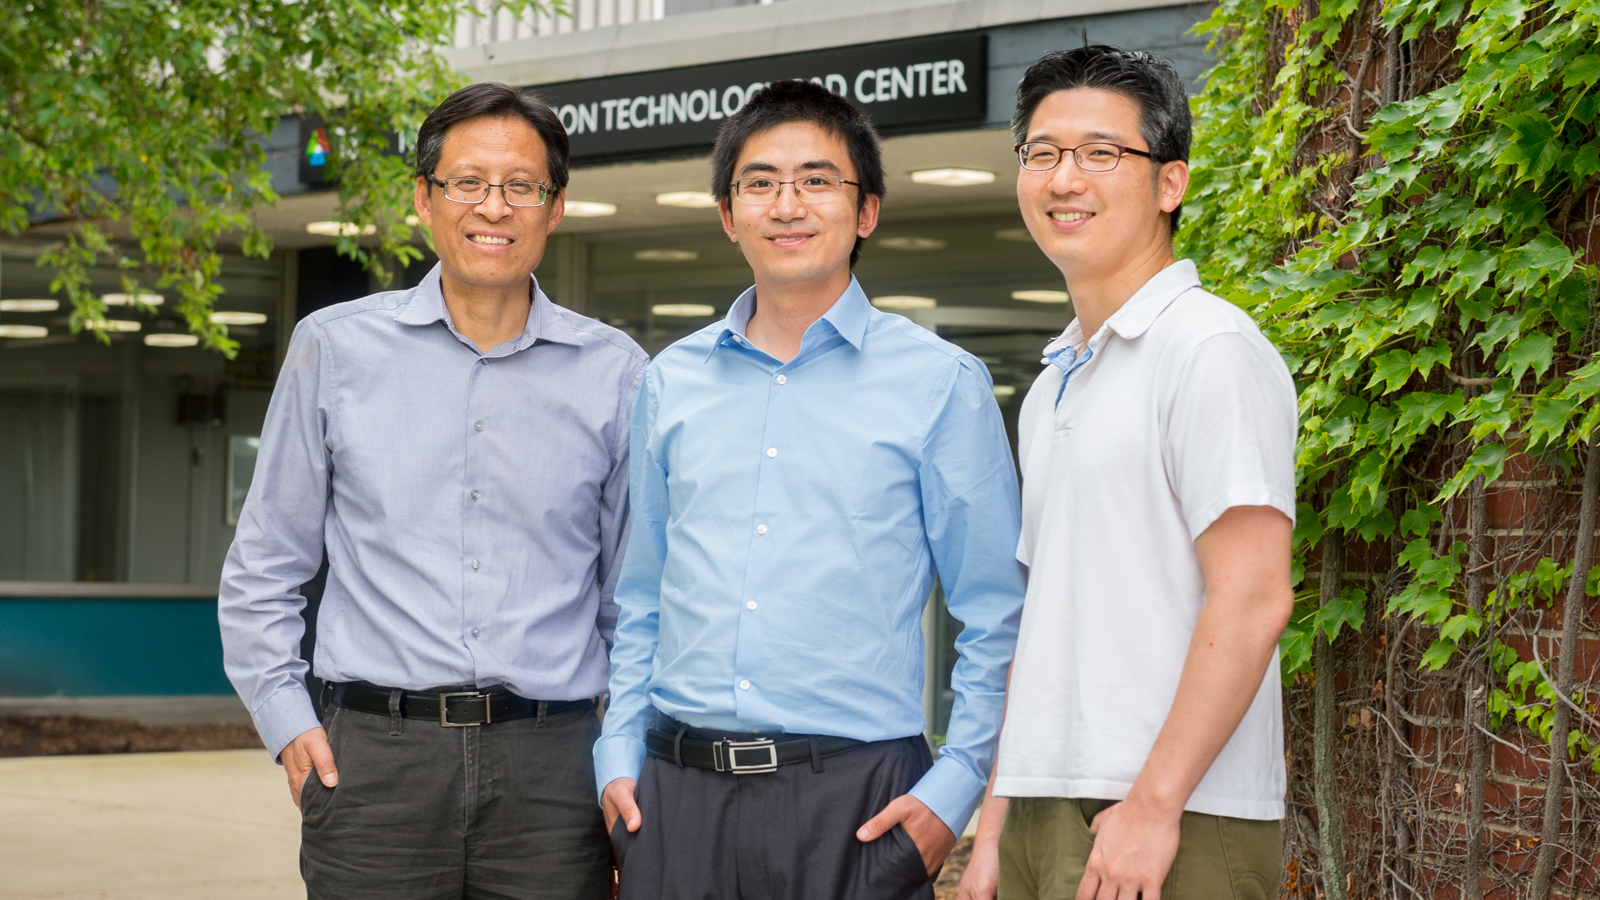 A new study by Argonne analyzes the life-cycle carbon impacts of fuels derived from Canadian oil sands. The study was conducted by, from left, senior scientist and group lead Michael Wang, principal investigator Hao Cai, energy systems analyst Jeongwoo Han, and life-cycle analysis team lead Amgad Elgowainy (not pictured). Photo by Mark Lopez.